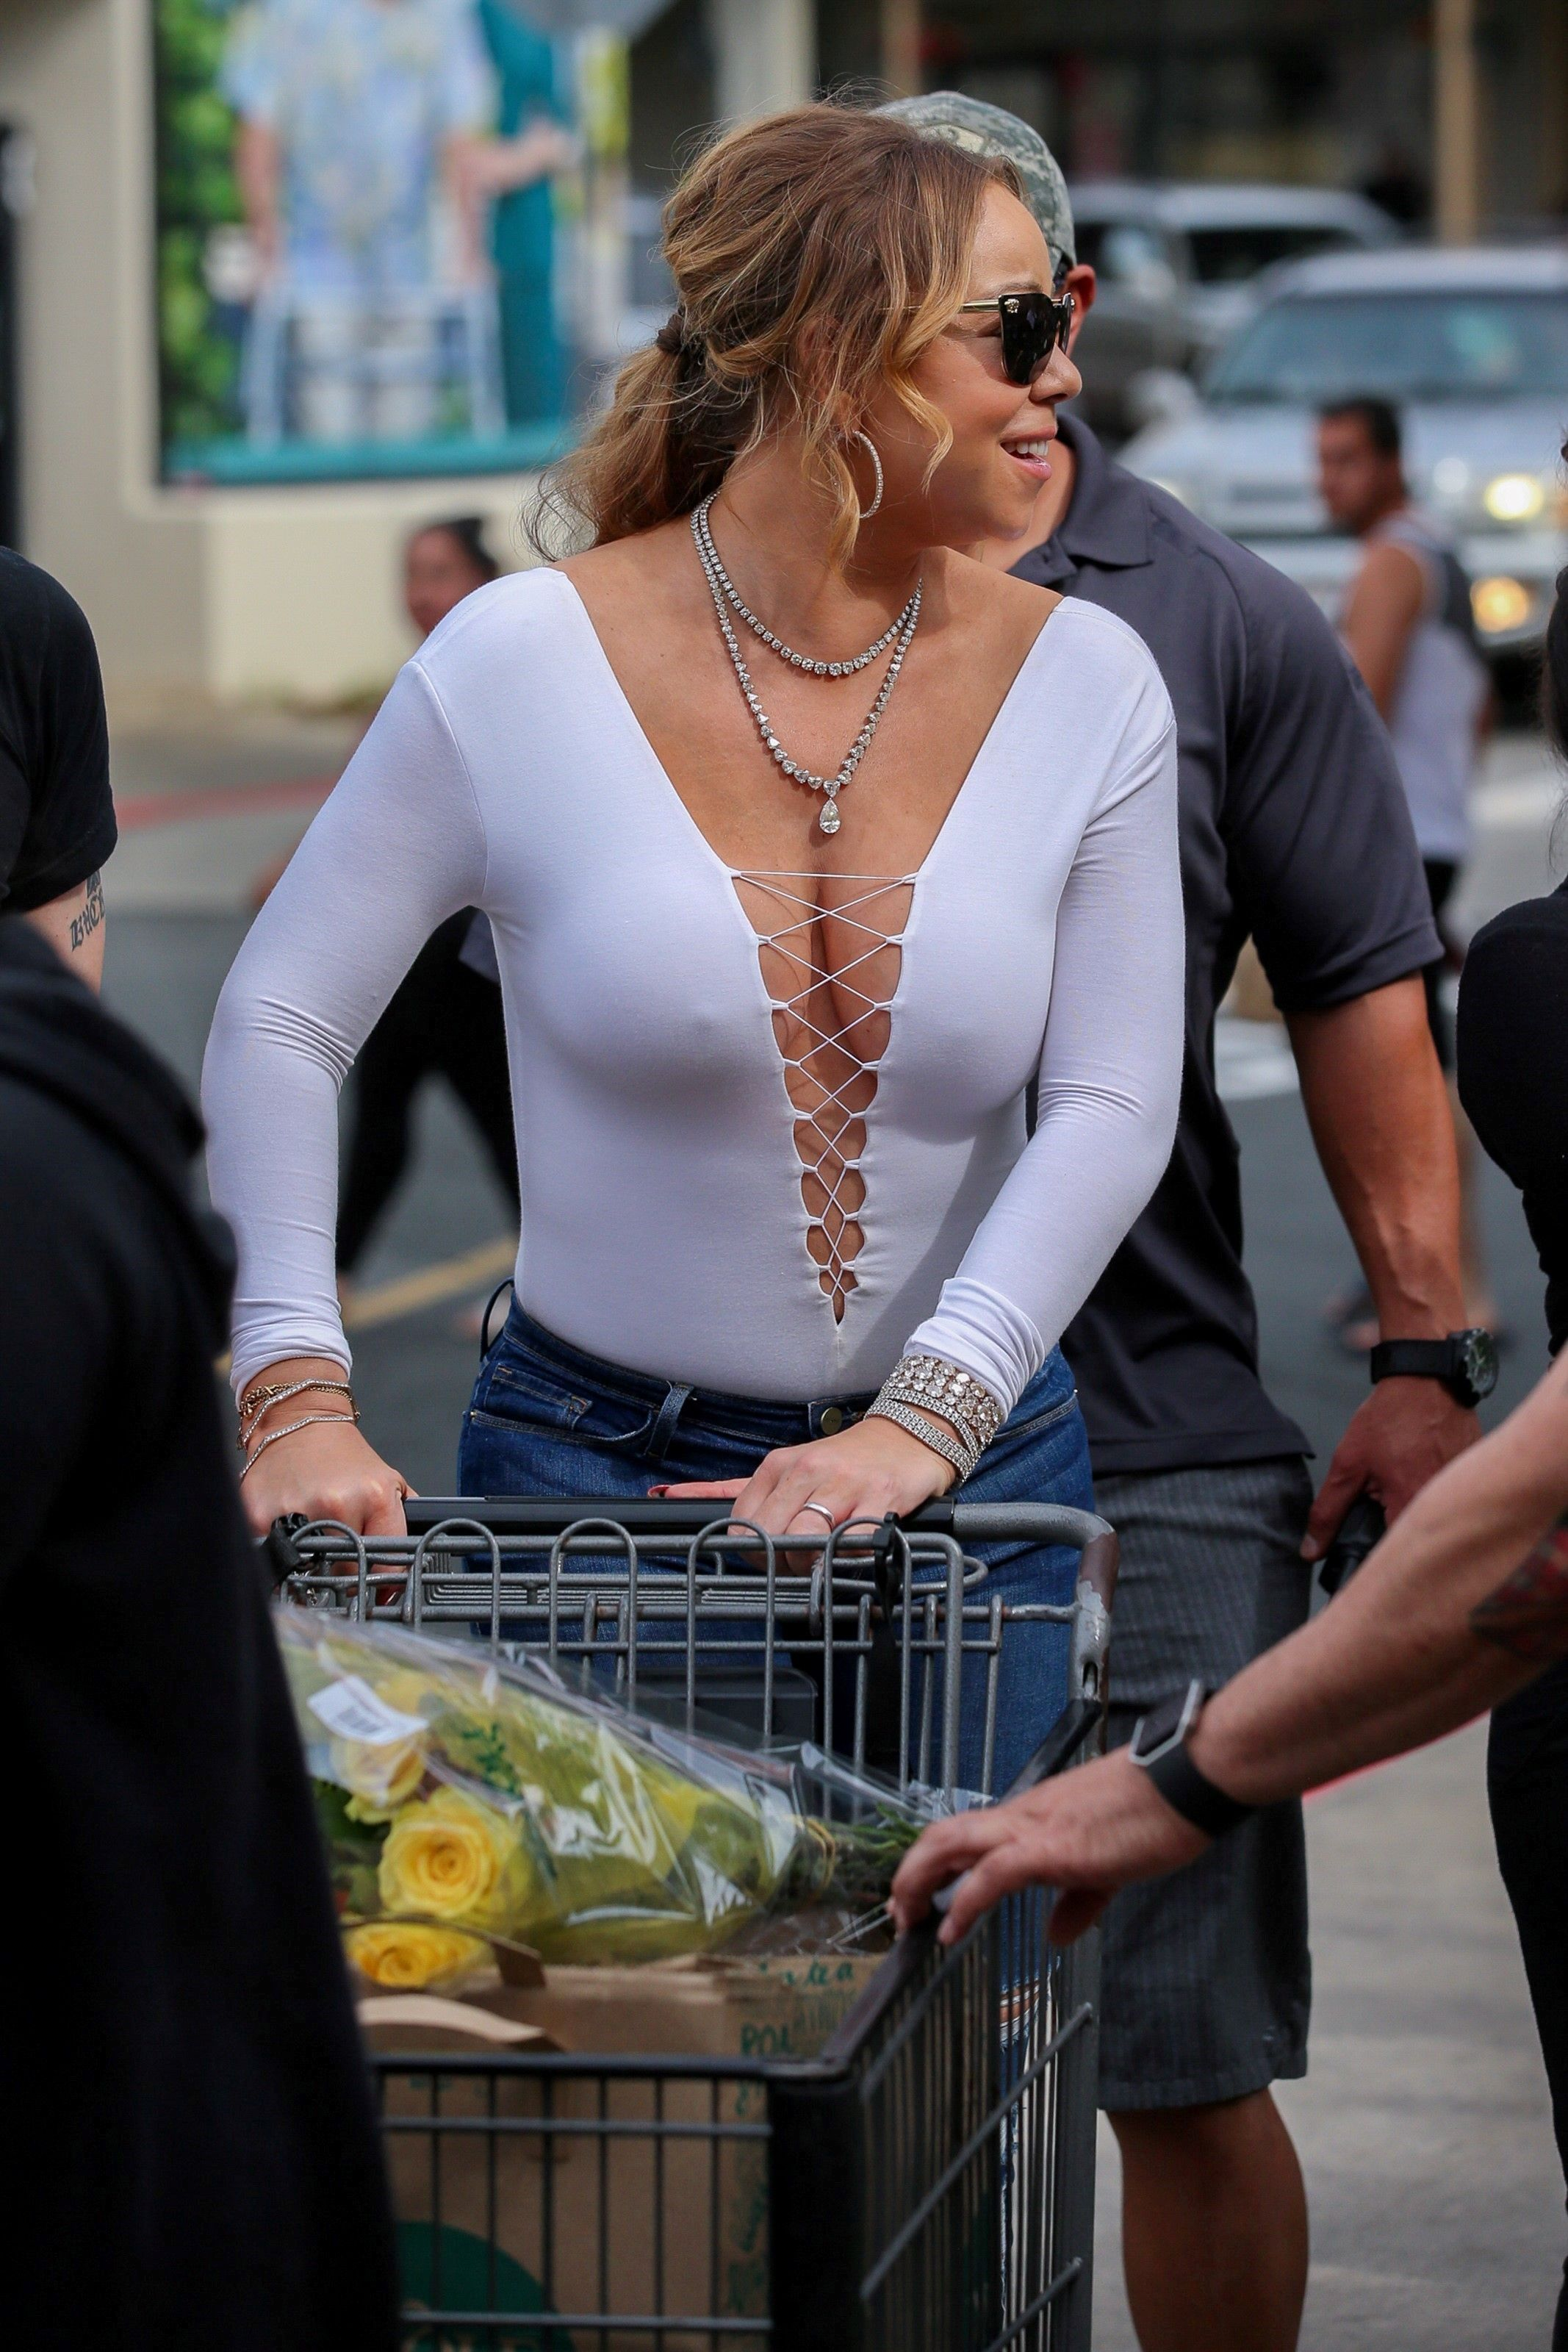 Braless Photos Of Mariah ...